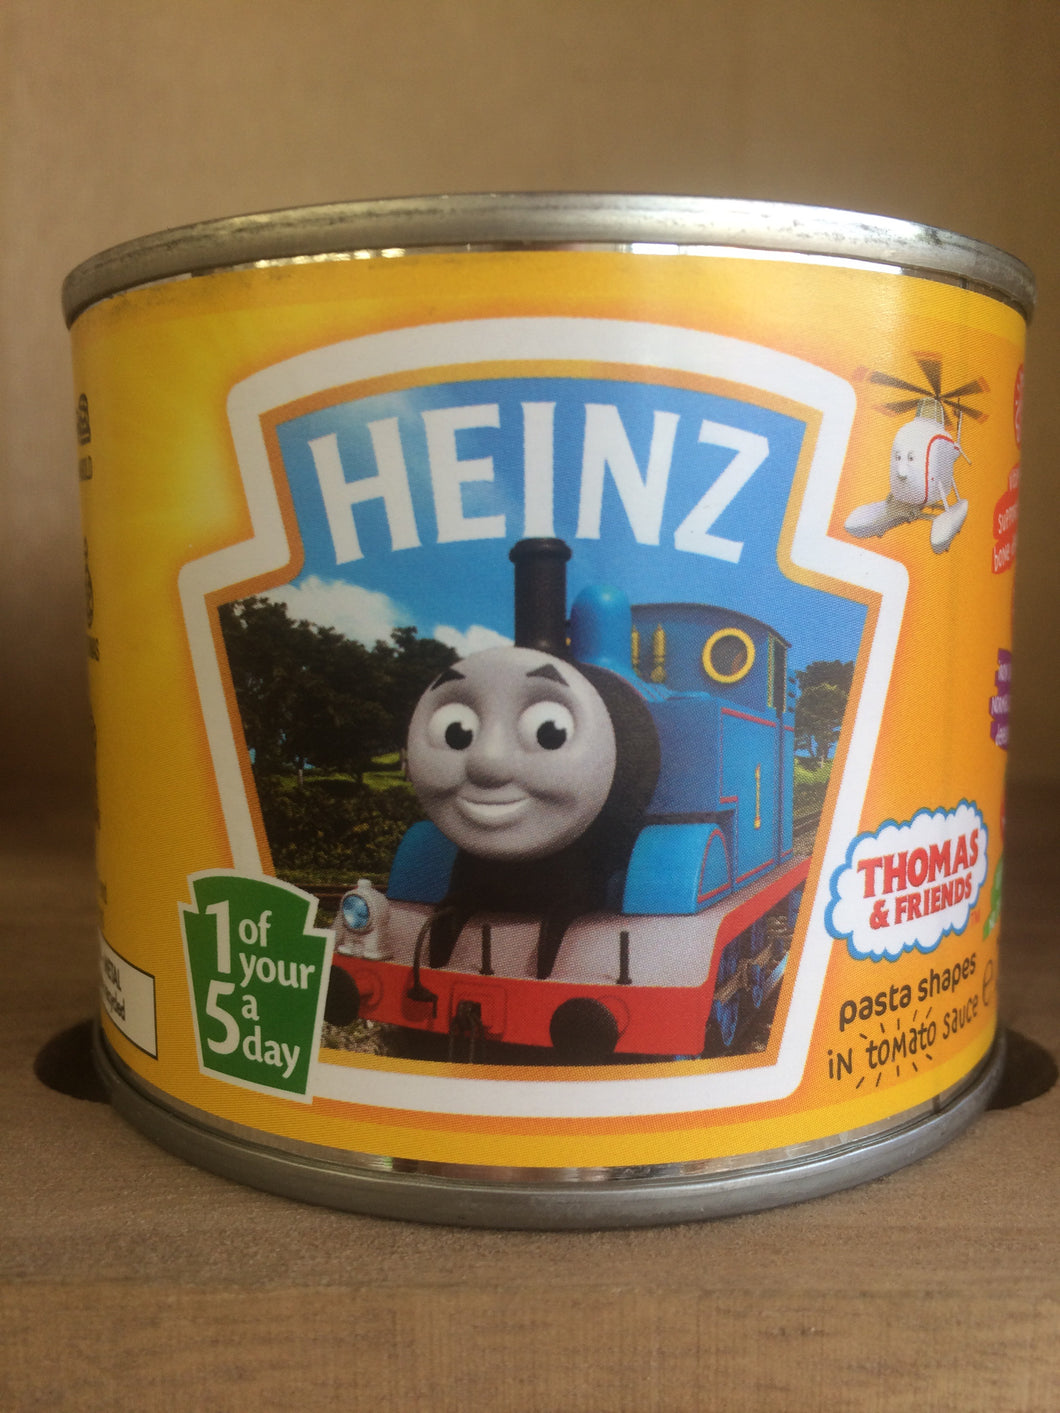 Heinz Thomas and Friends Pasta Shapes in Tomato Sauce 205g